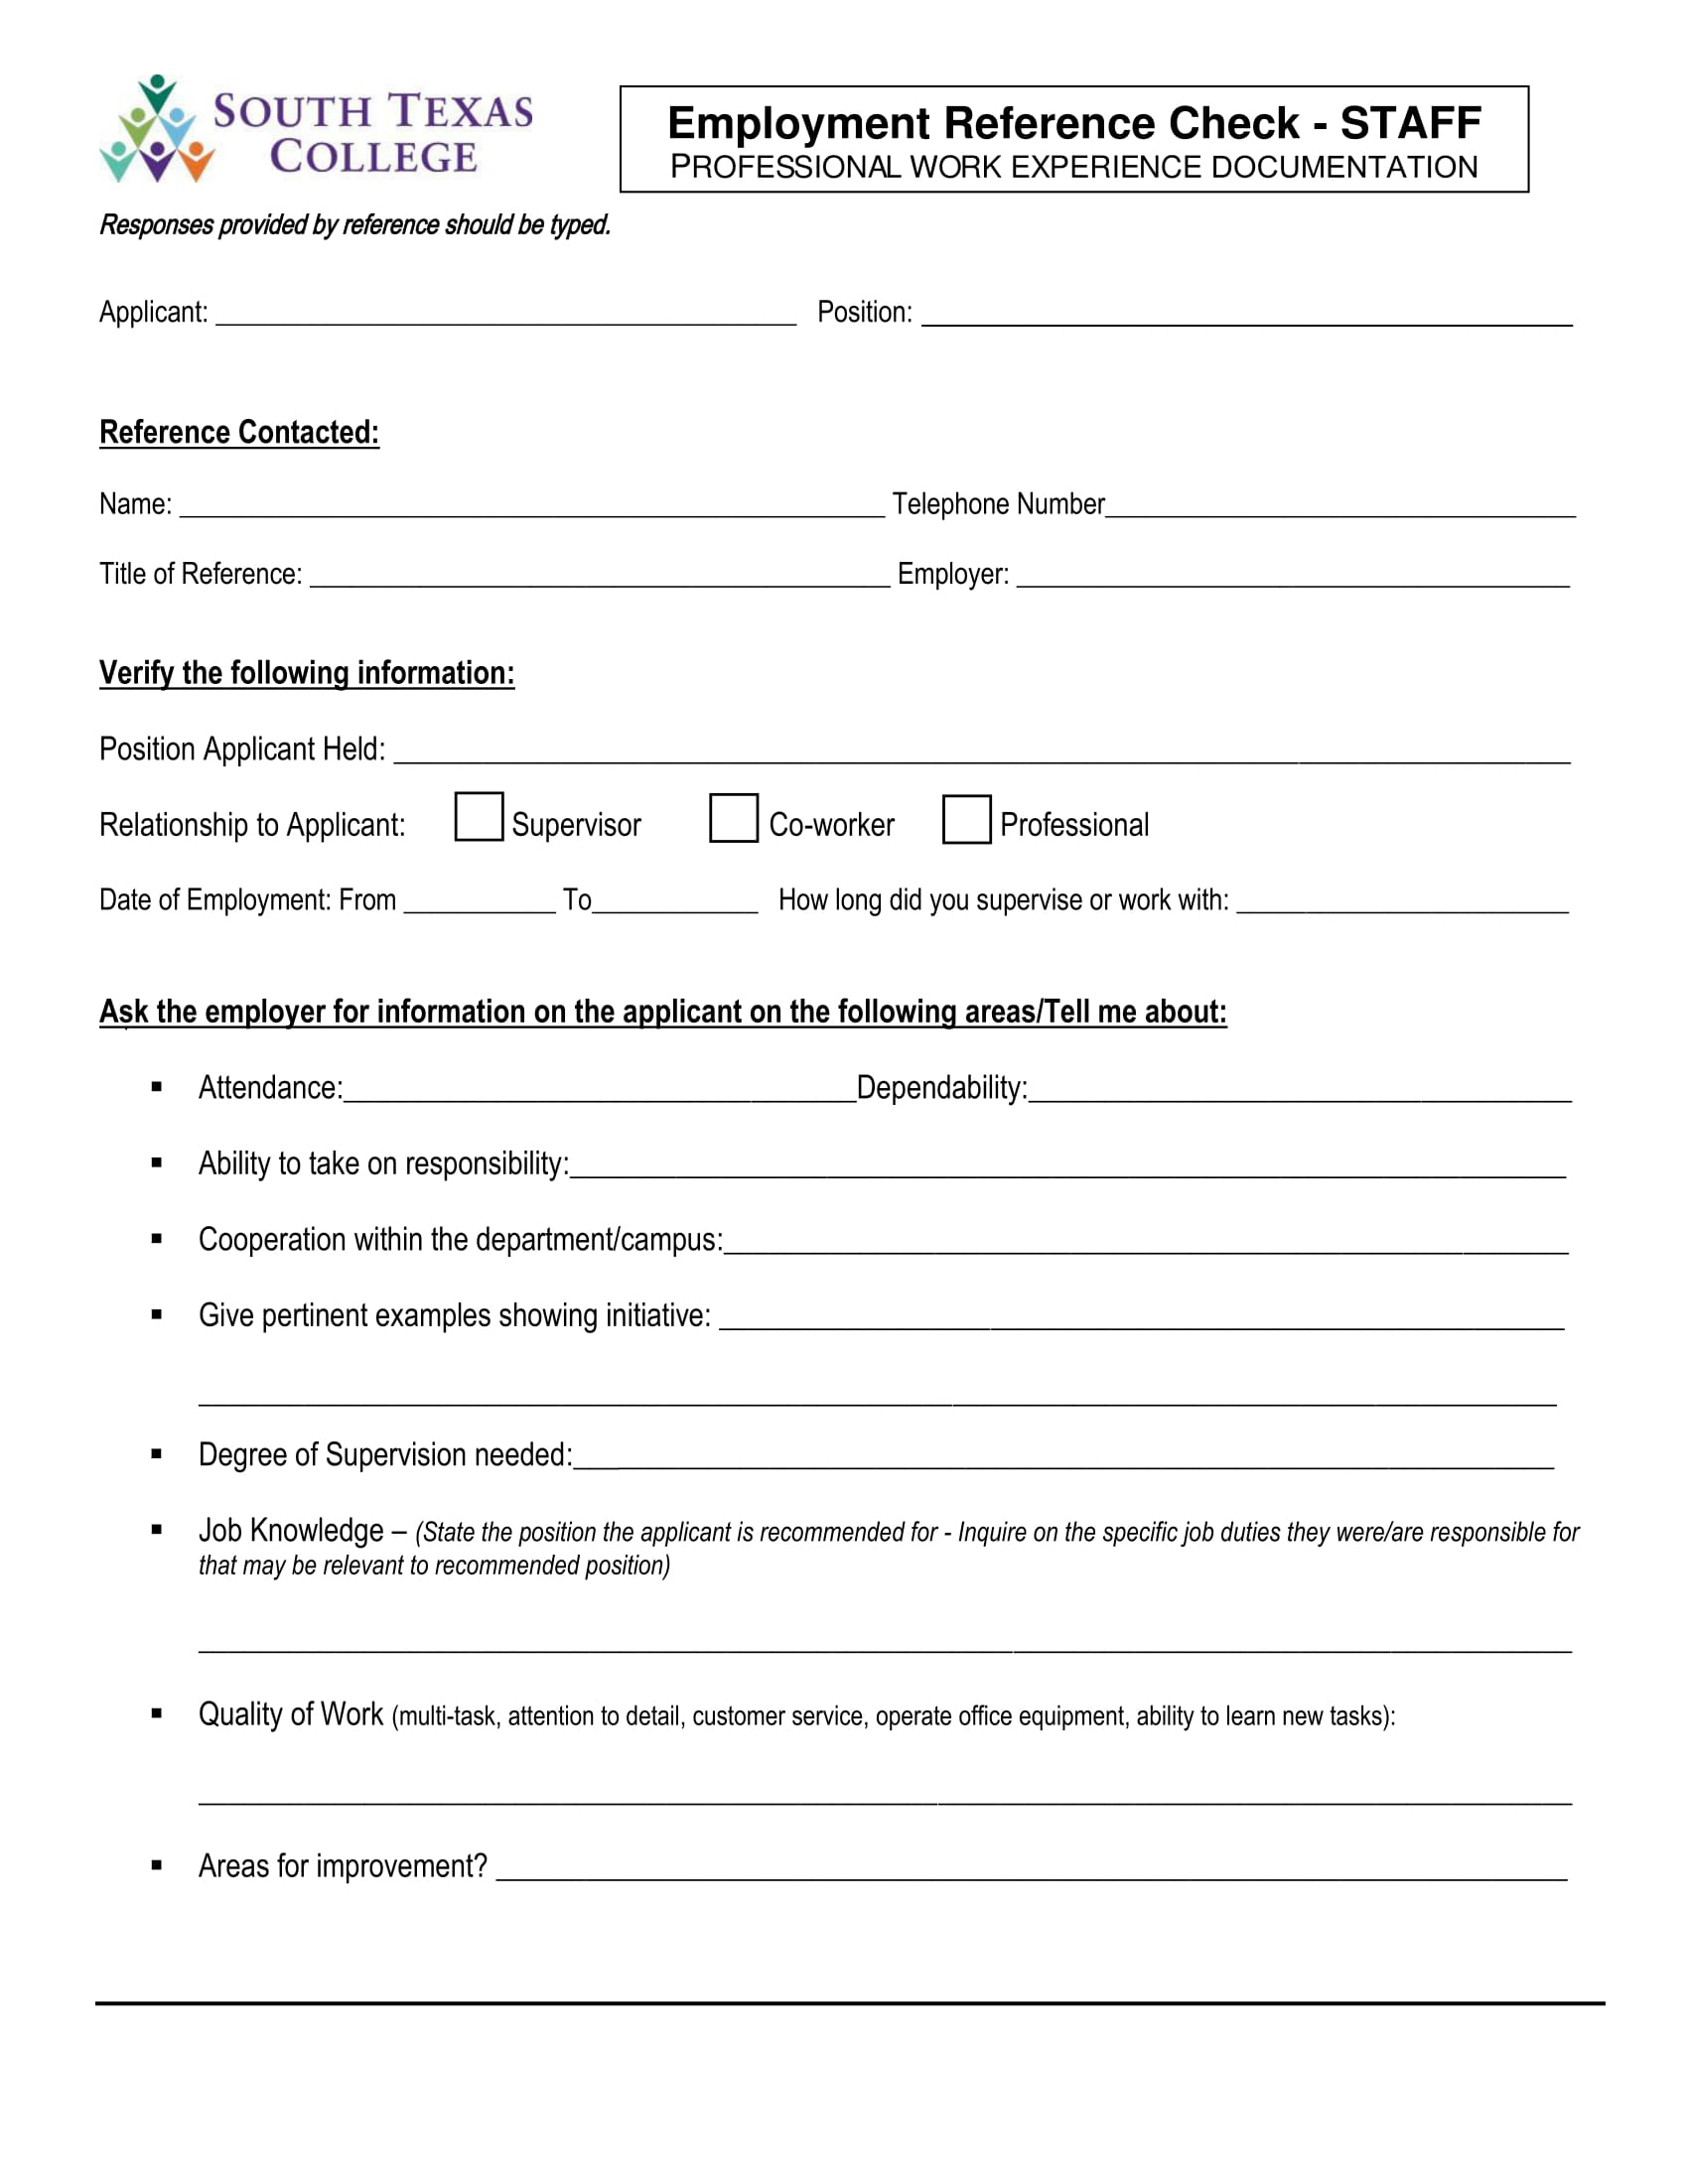 14 reference check forms free pdf format download for Employment reference check form template